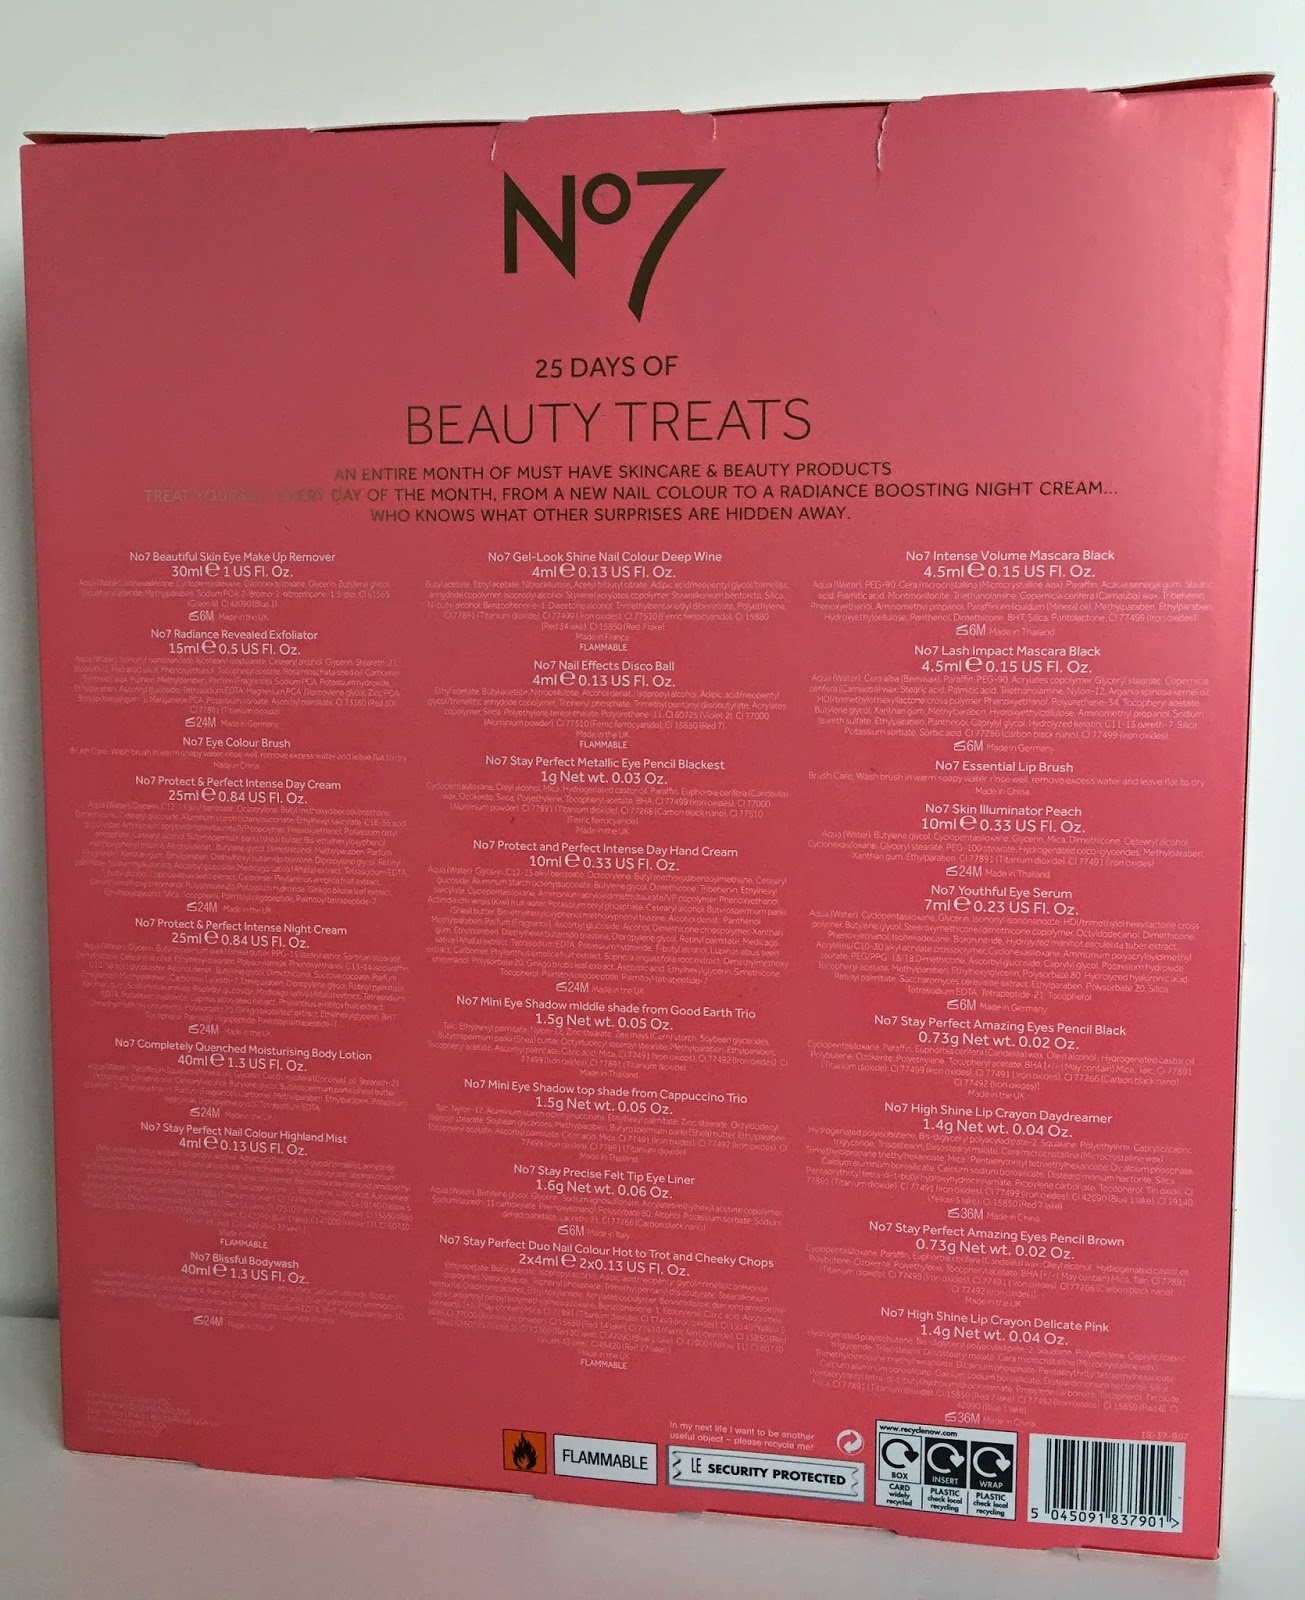 My 1st Weekly Blogpost About The Products I Got In No7 Advent Calendar Will Be On Other Blog 7th December Post Is Live